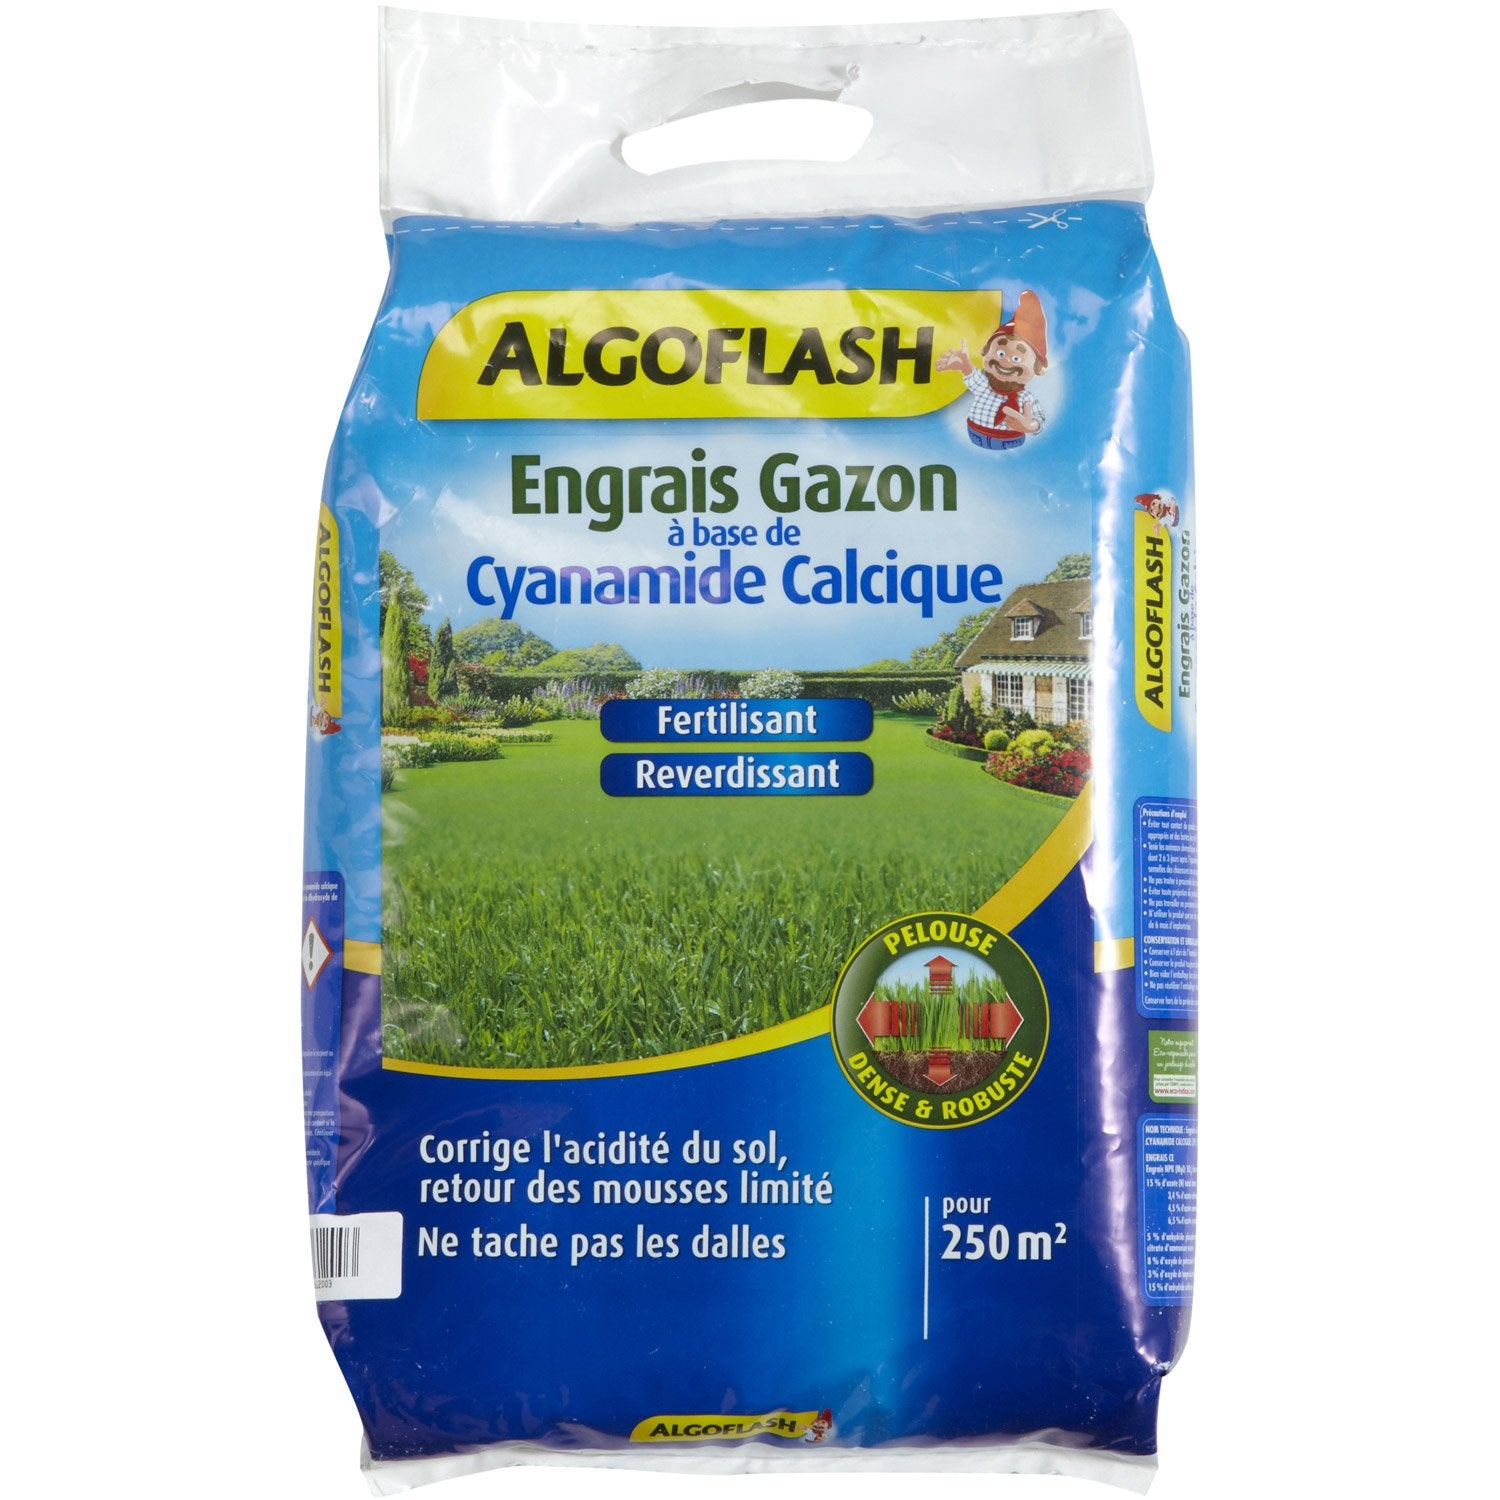 Engrais gazon anti mousse algoflash 12 5kg 250m2 leroy merlin - Anti mousse leroy merlin ...